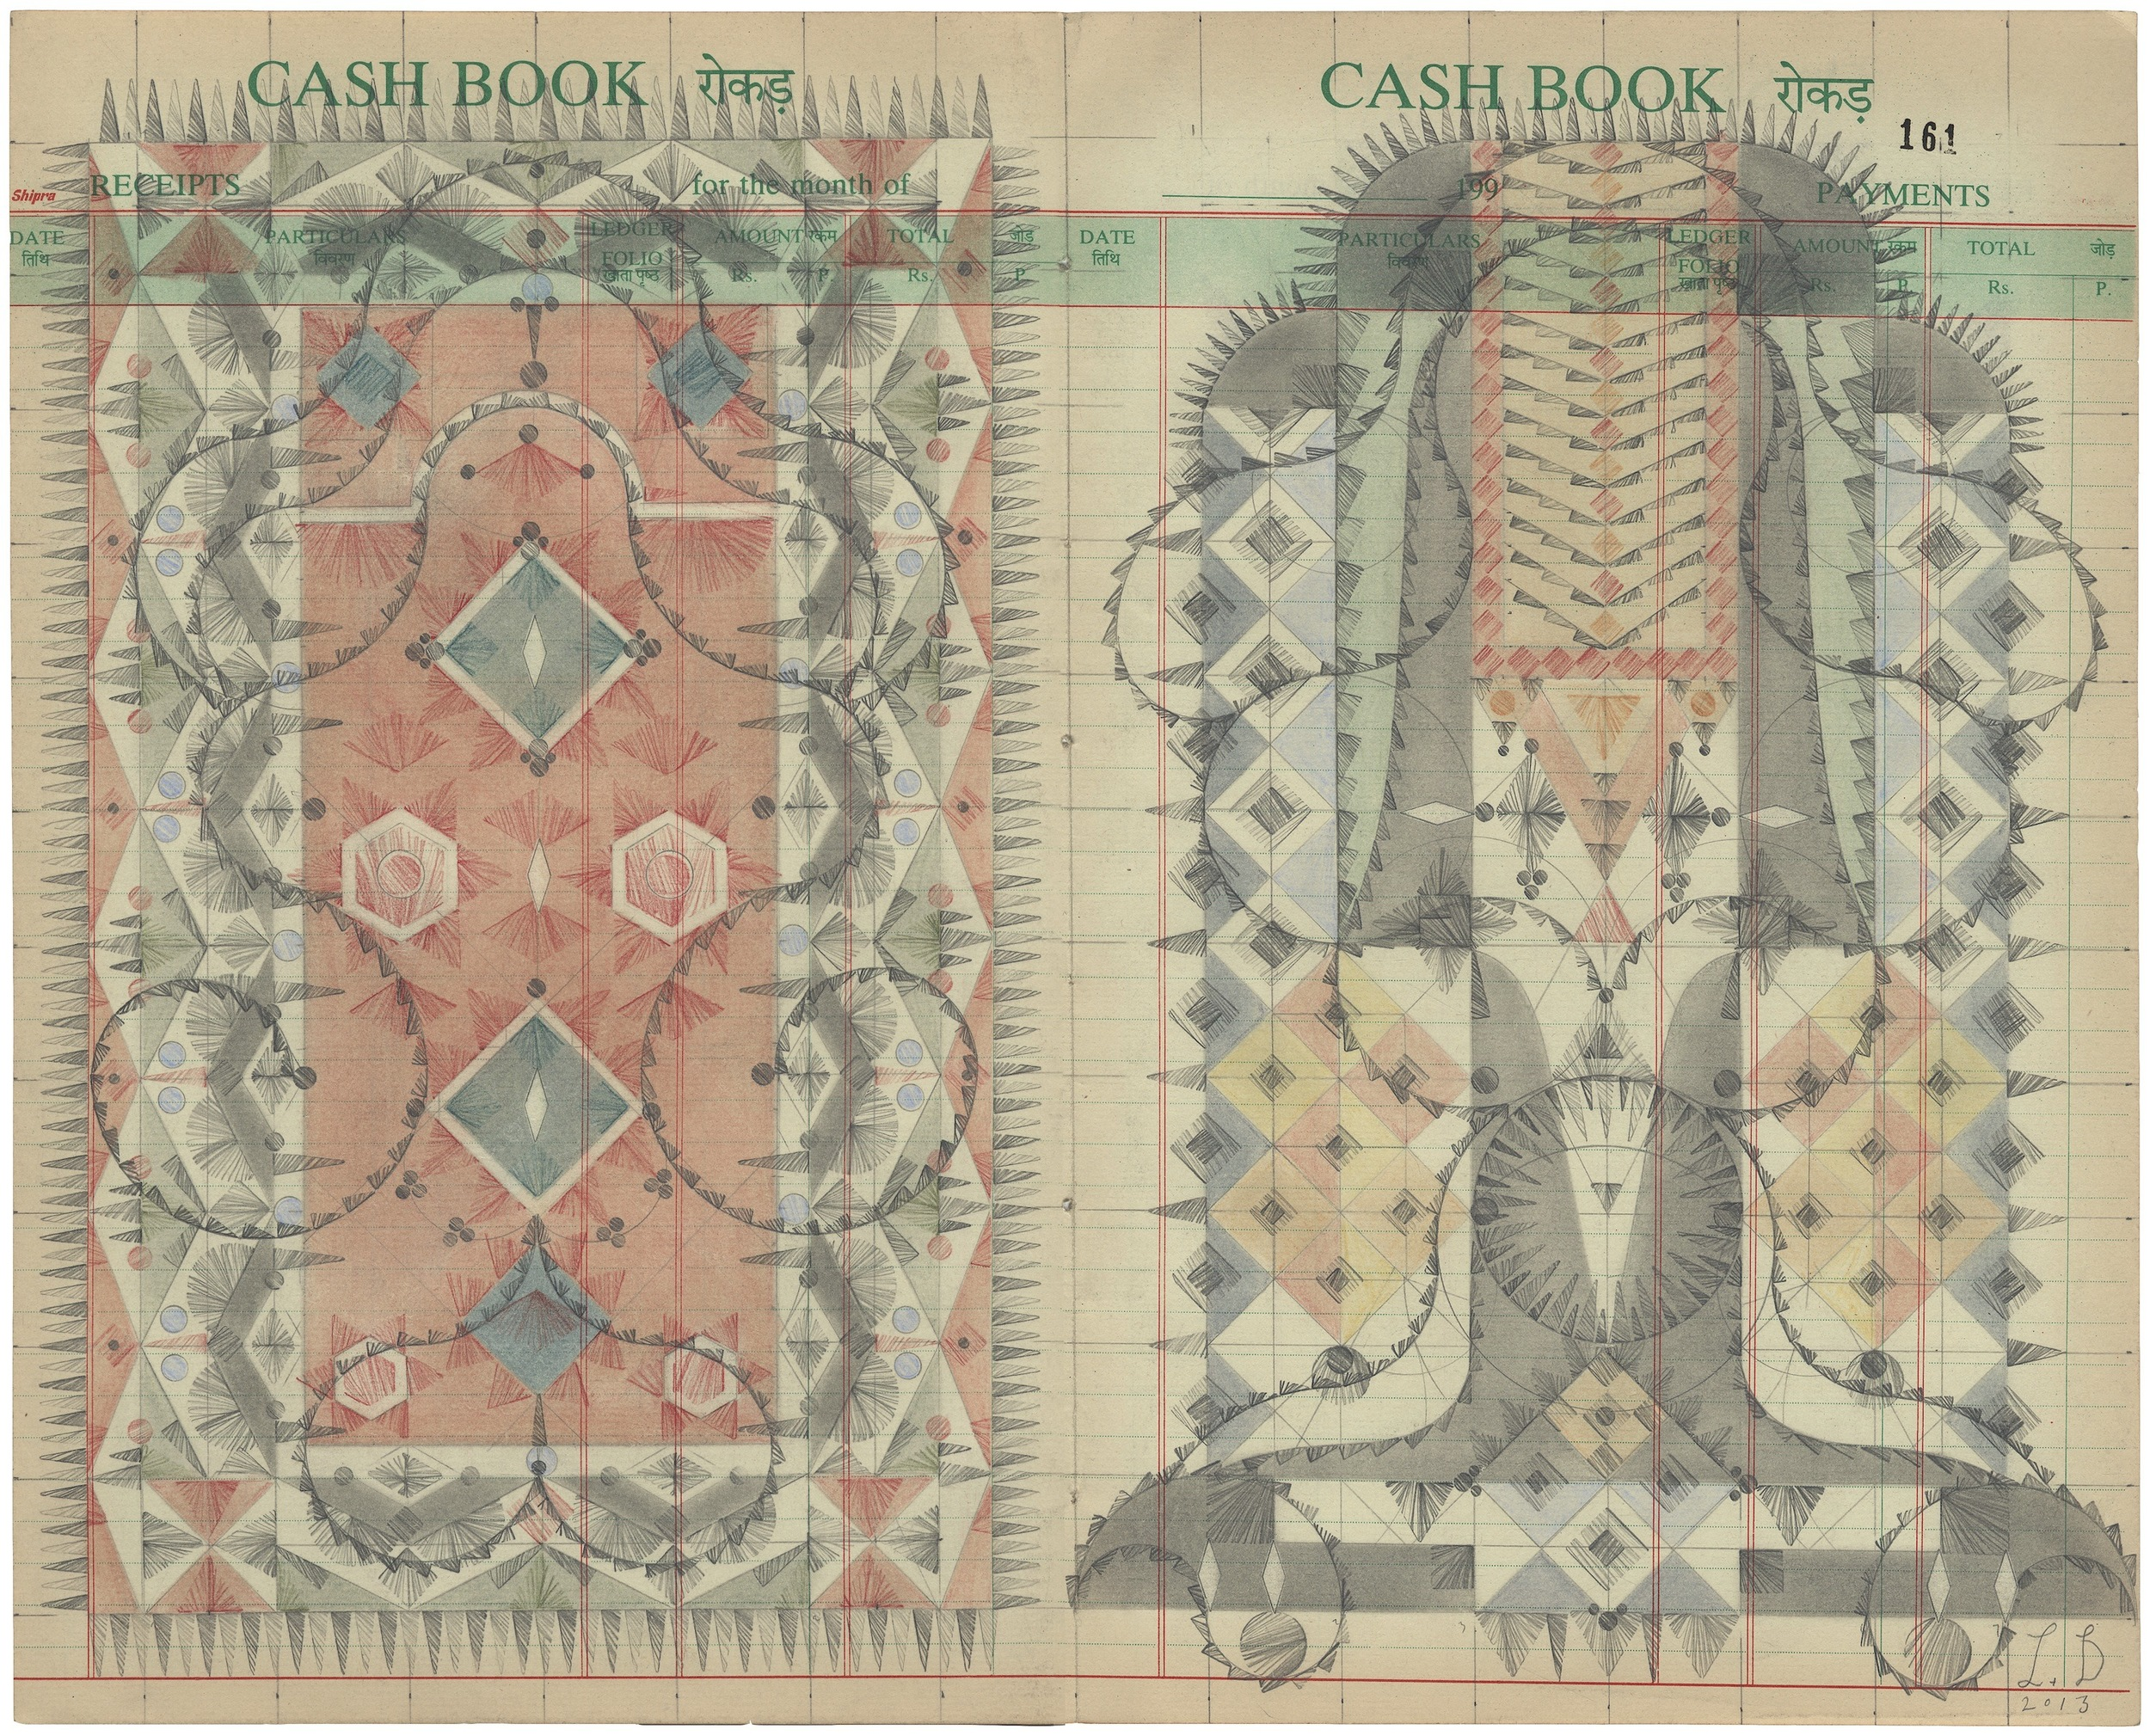 Gamelan Cashbook,Colored Pencil and Graphite on Antique Ledger Book Pages. 13.75 x 16.75 inches